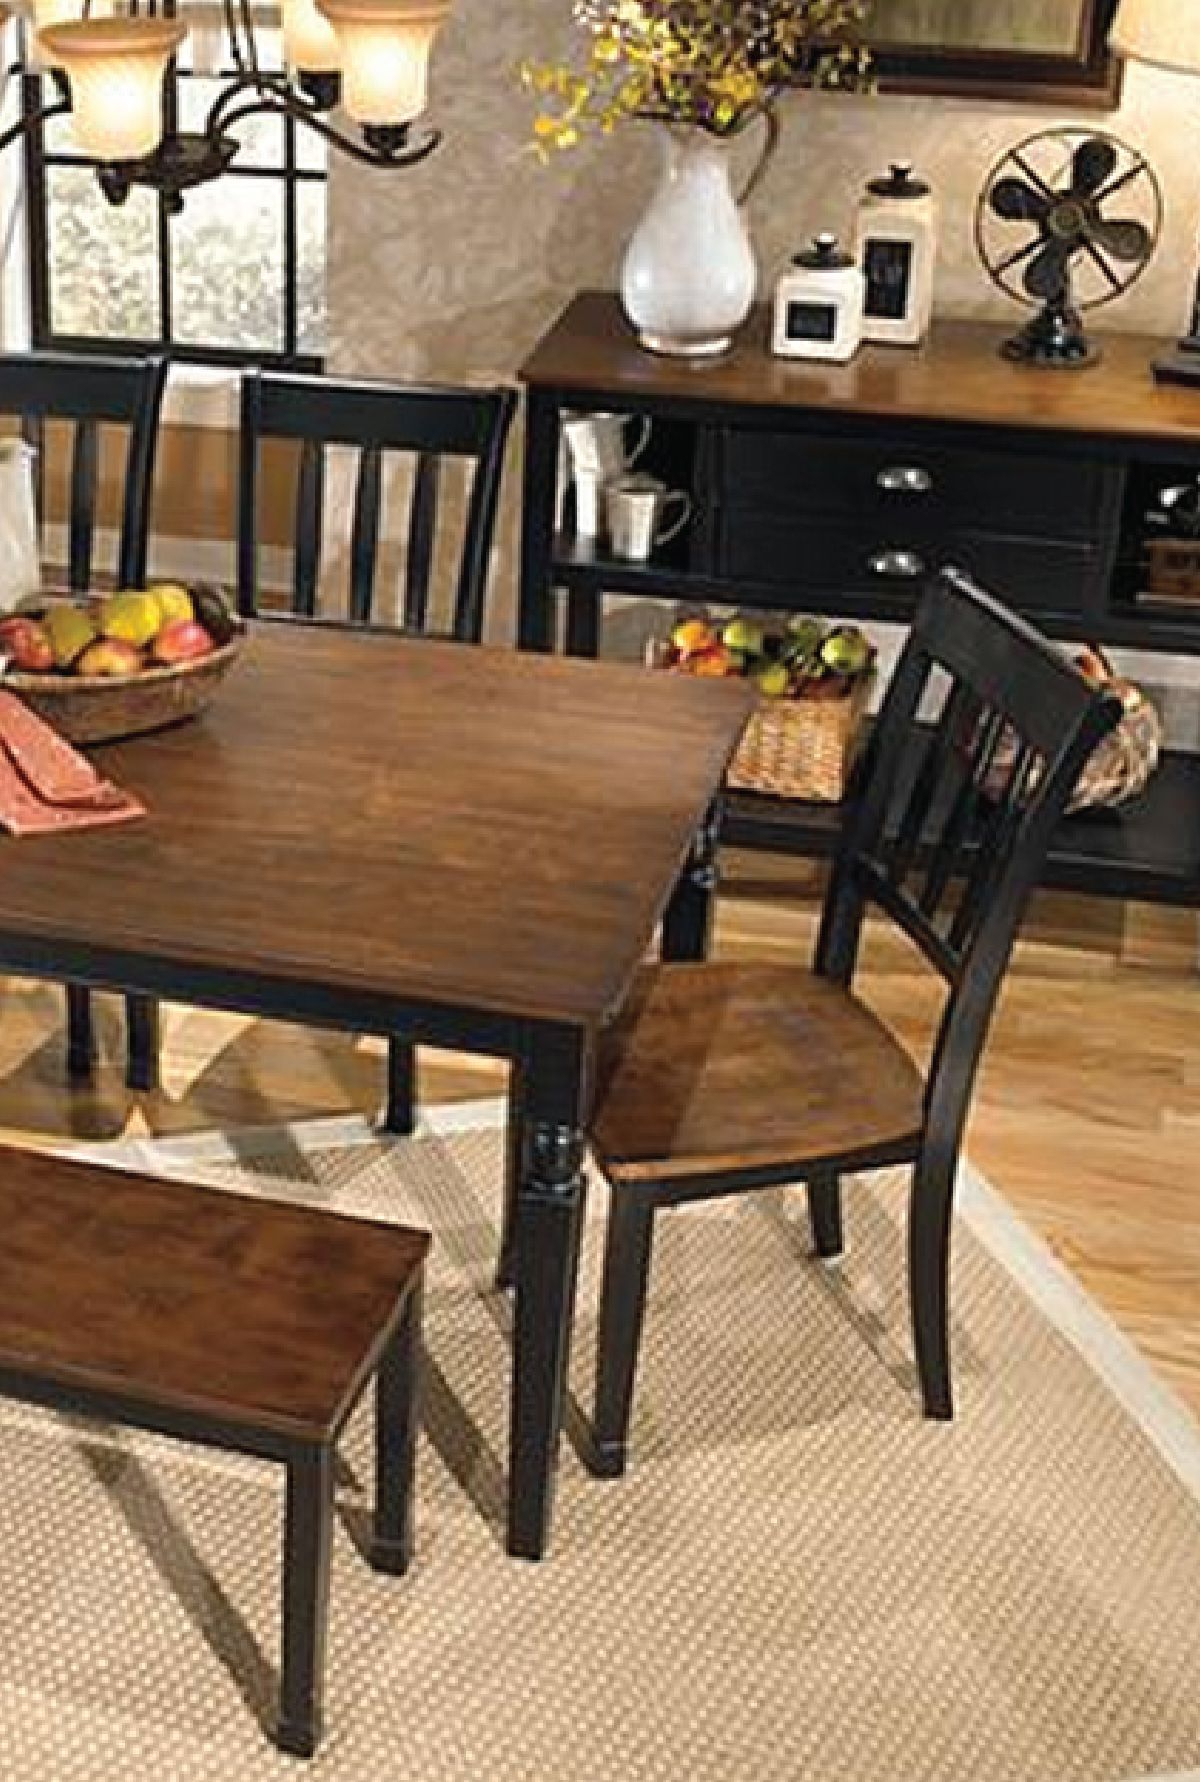 Recent This Farmhouse Style Table Is An Elegant And Beautiful Pertaining To Distressed Walnut And Black Finish Wood Modern Country Dining Tables (View 27 of 30)